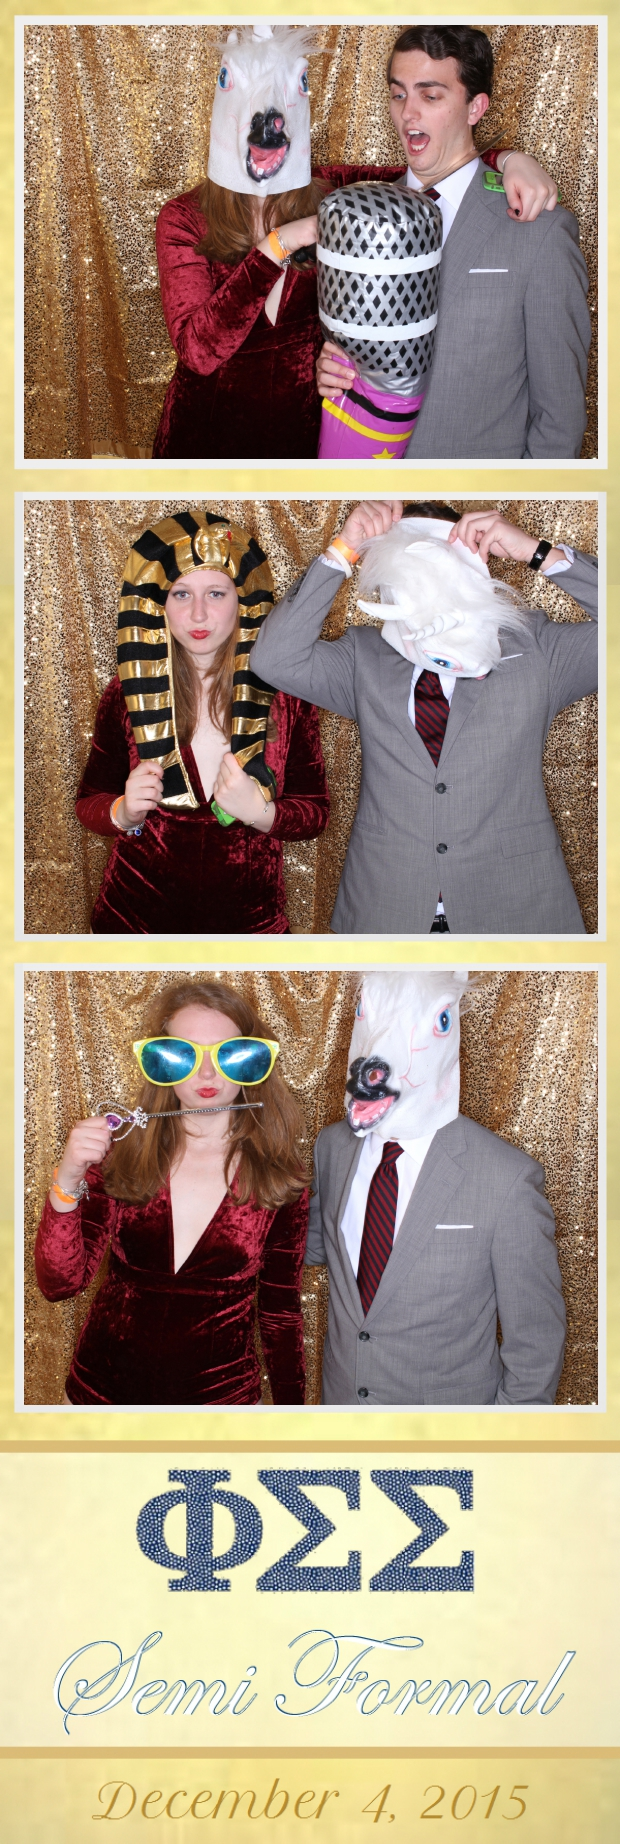 Guest House Events Photo Booth Phi Sigma Sigma Semi Formal (25).jpg